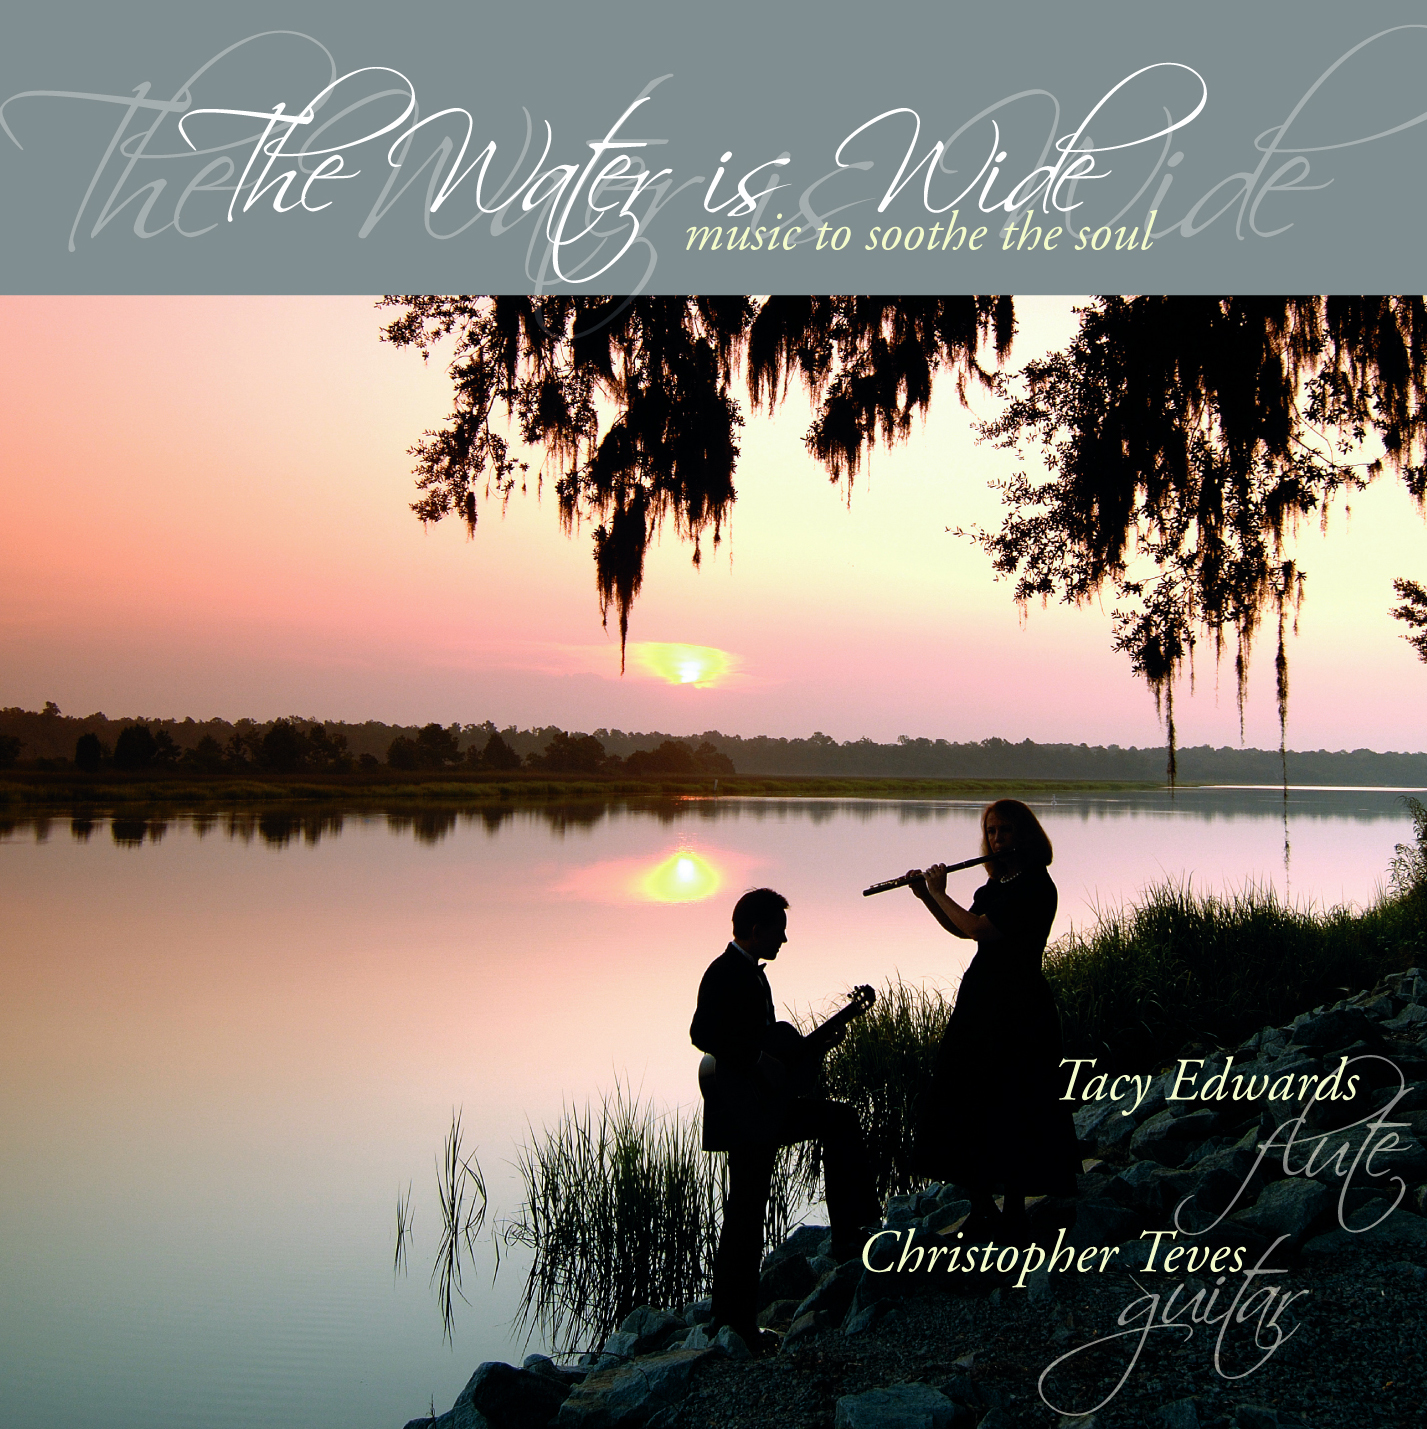 Water Is Wide CD available on  itunes  and  CDbaby . Cover photo by  Chris and Cami Photography  taken at dawn on the Ashley River at the  Drayton Hall Plantation .